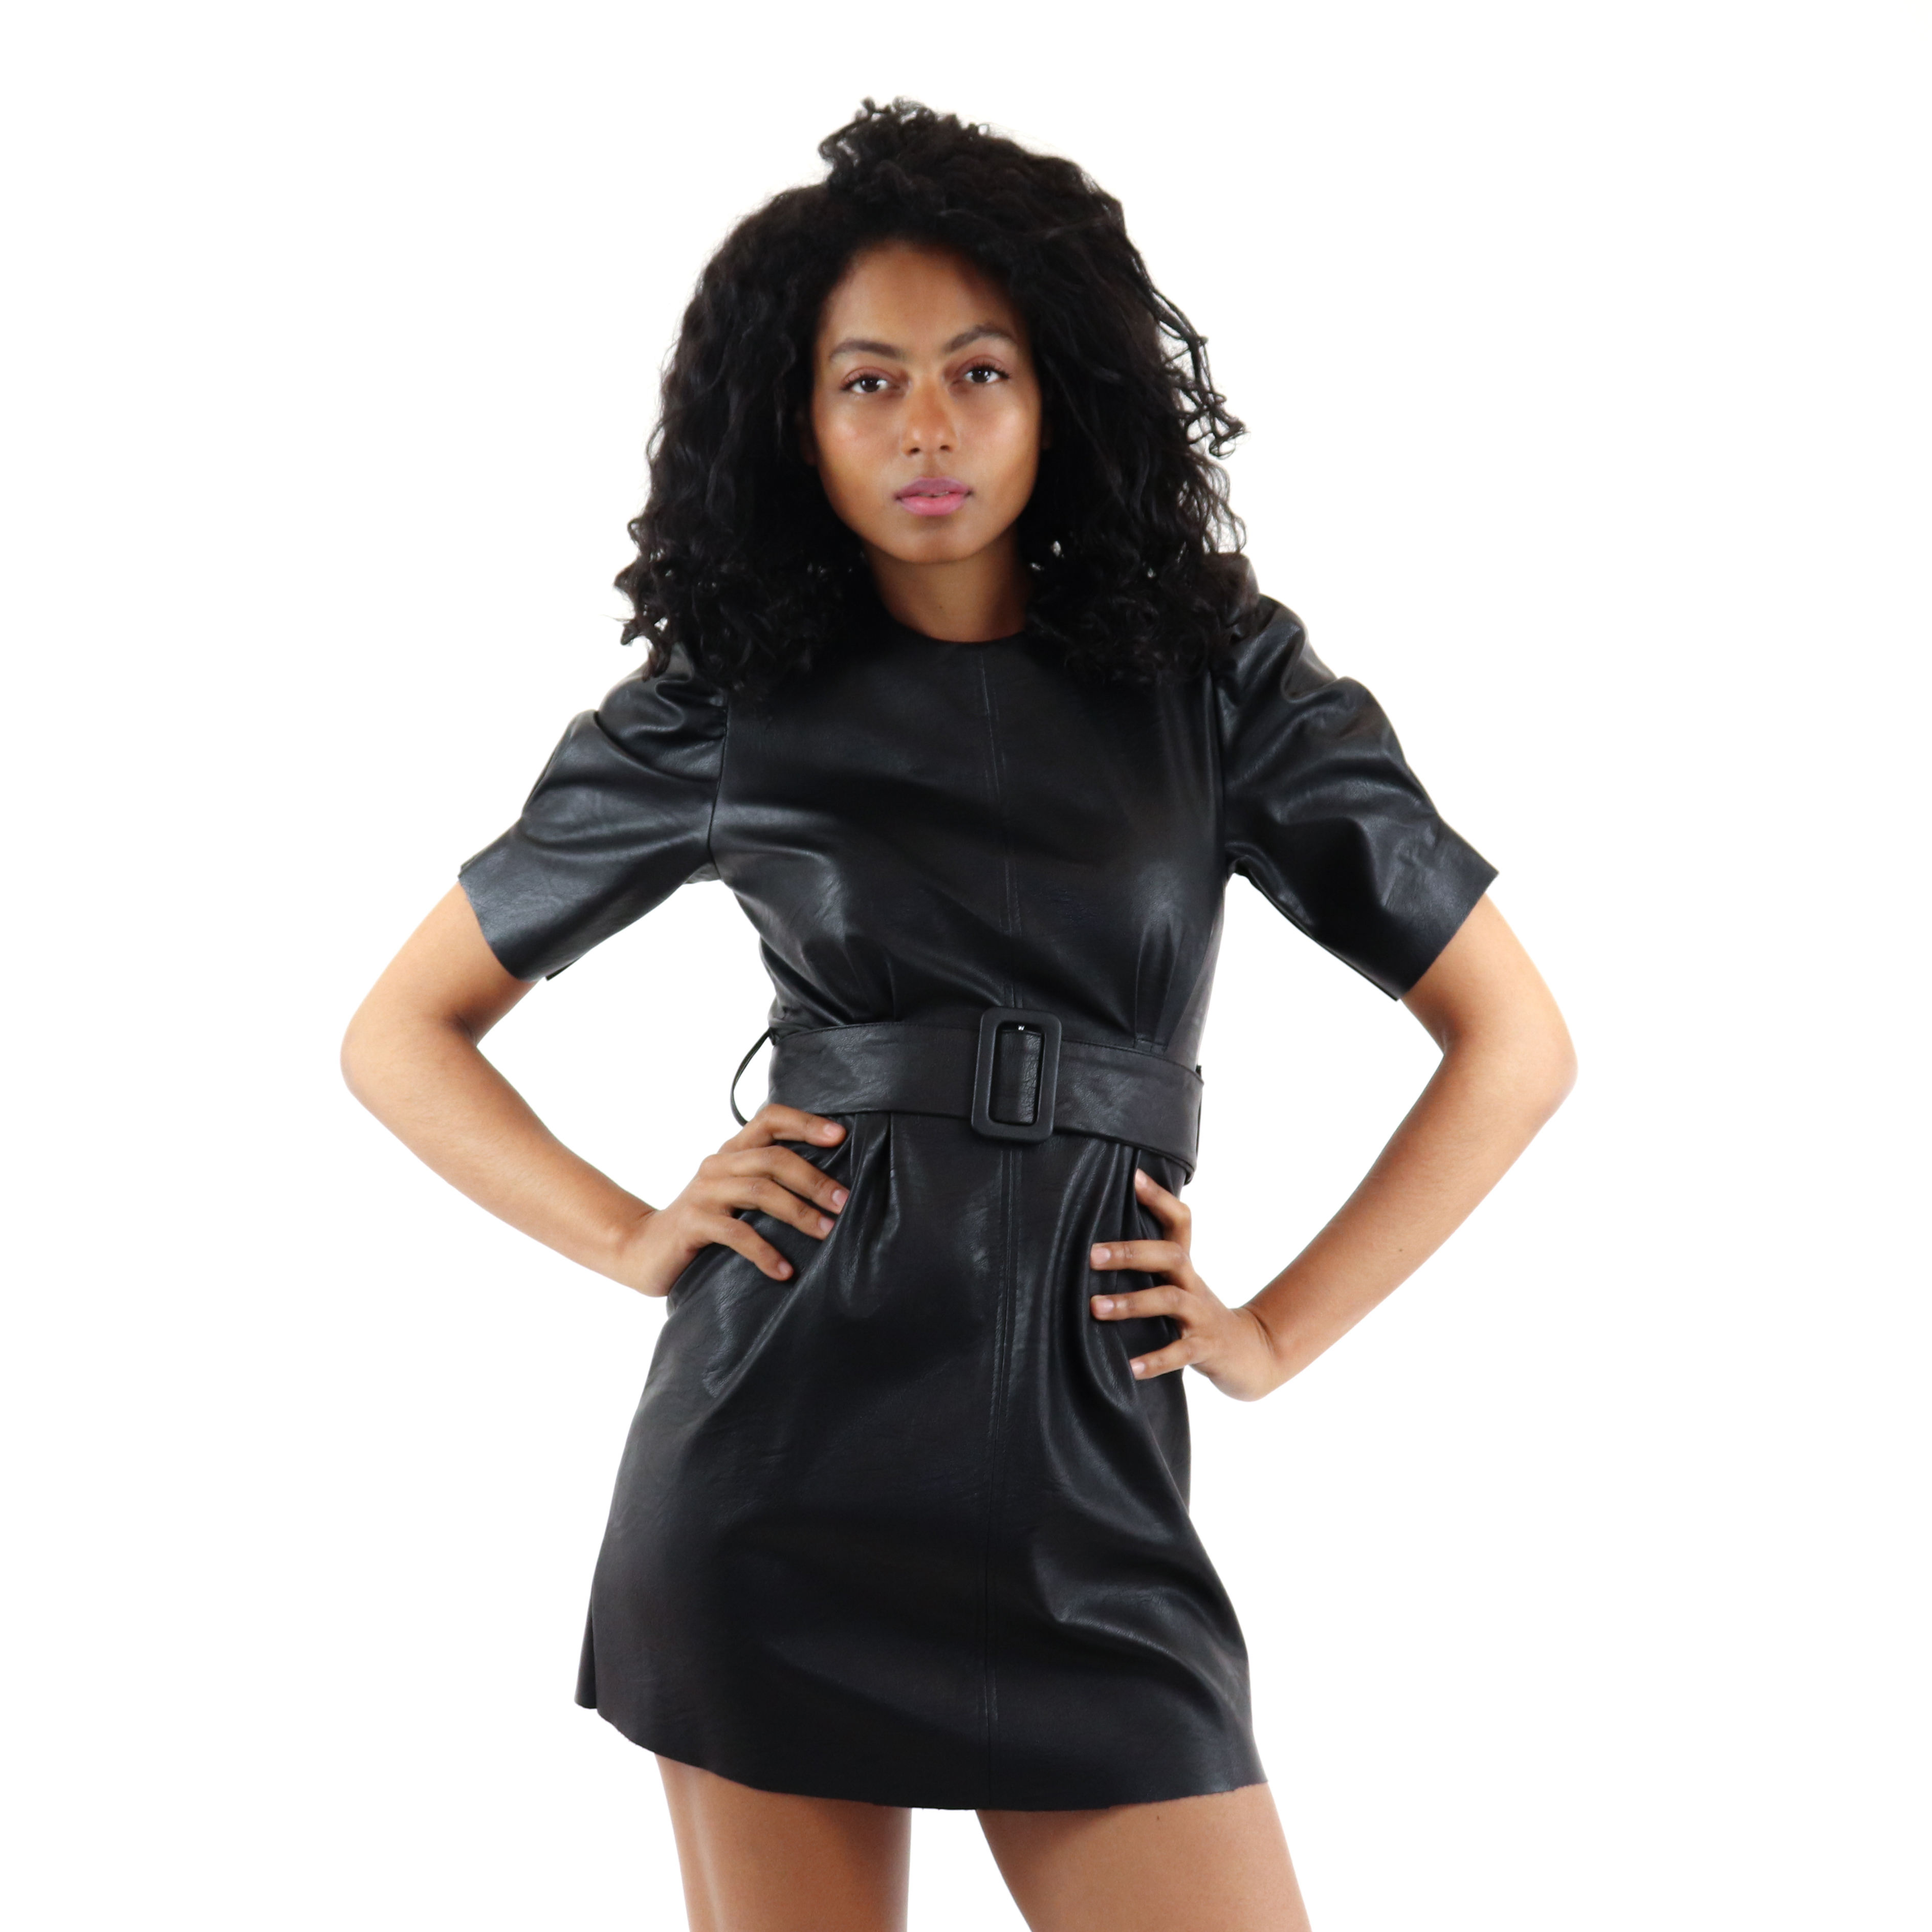 Ladies casual black leather dress with belt design